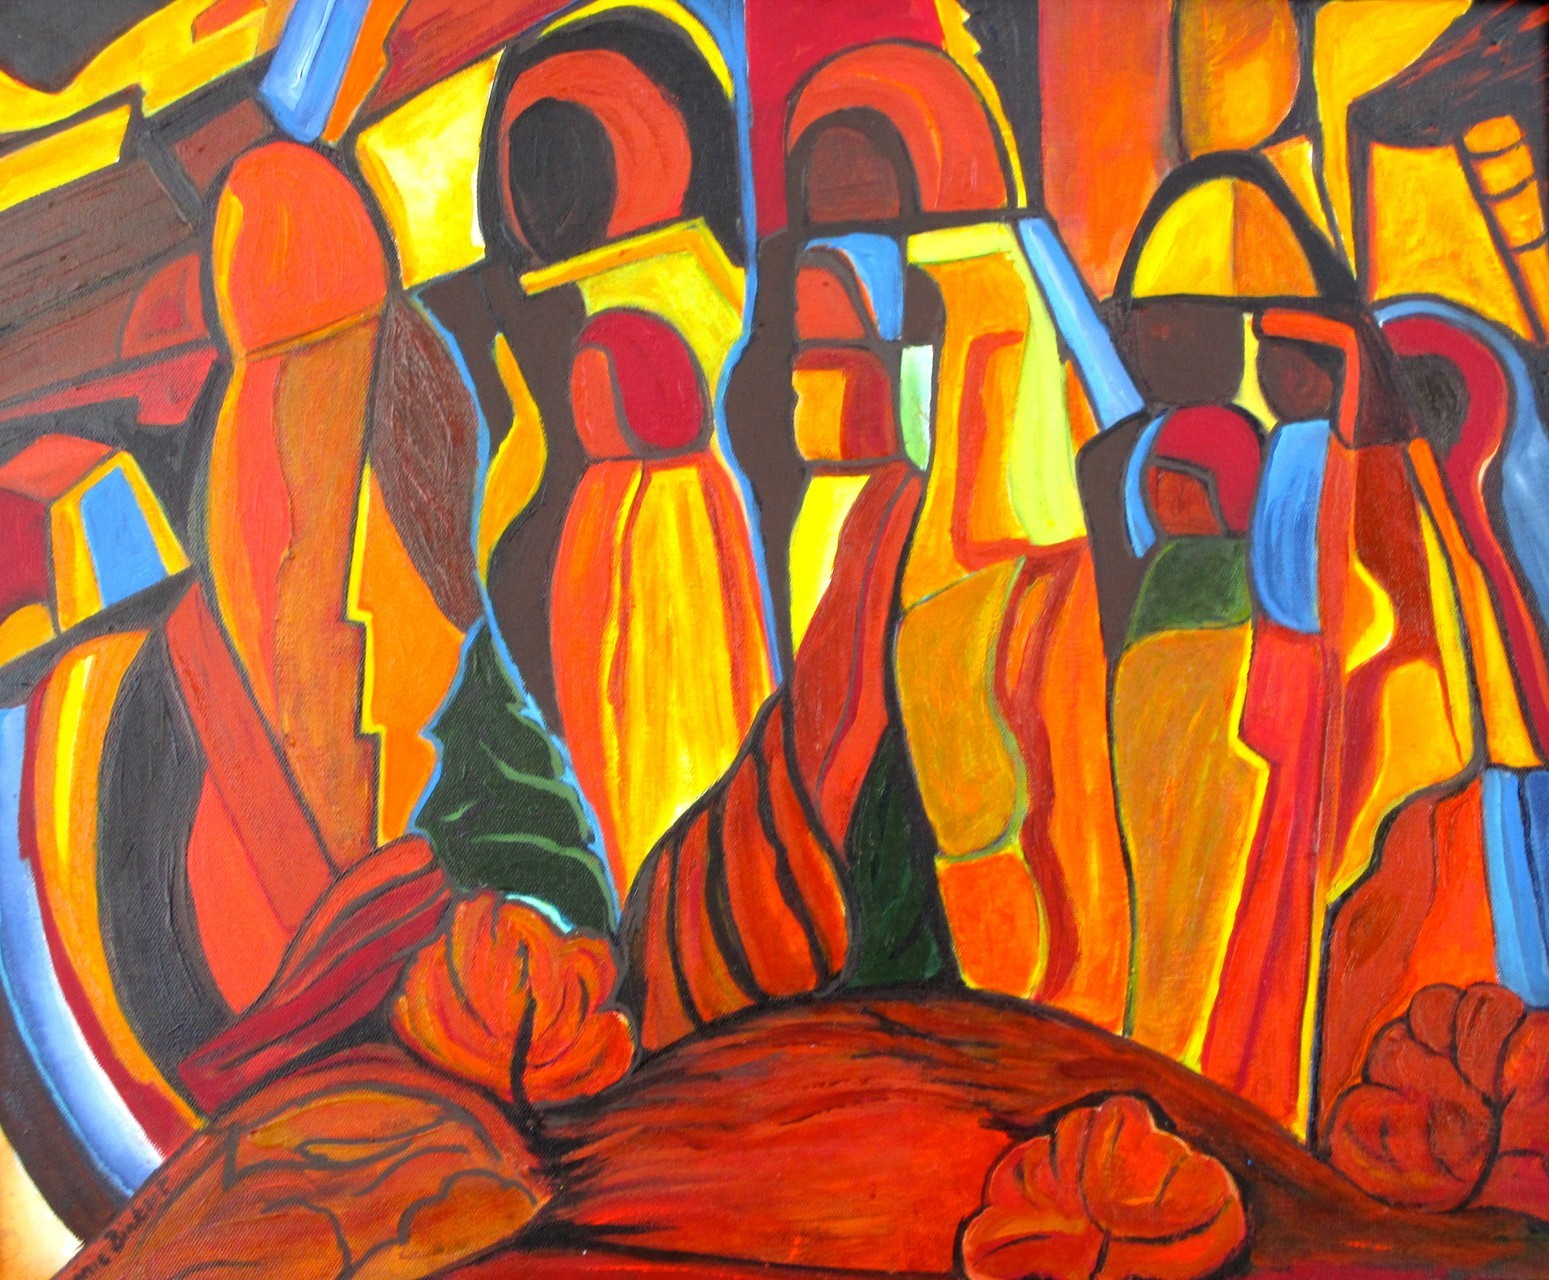 Procession, acrylic on canvas, 24 x 20, 2014 SOLD